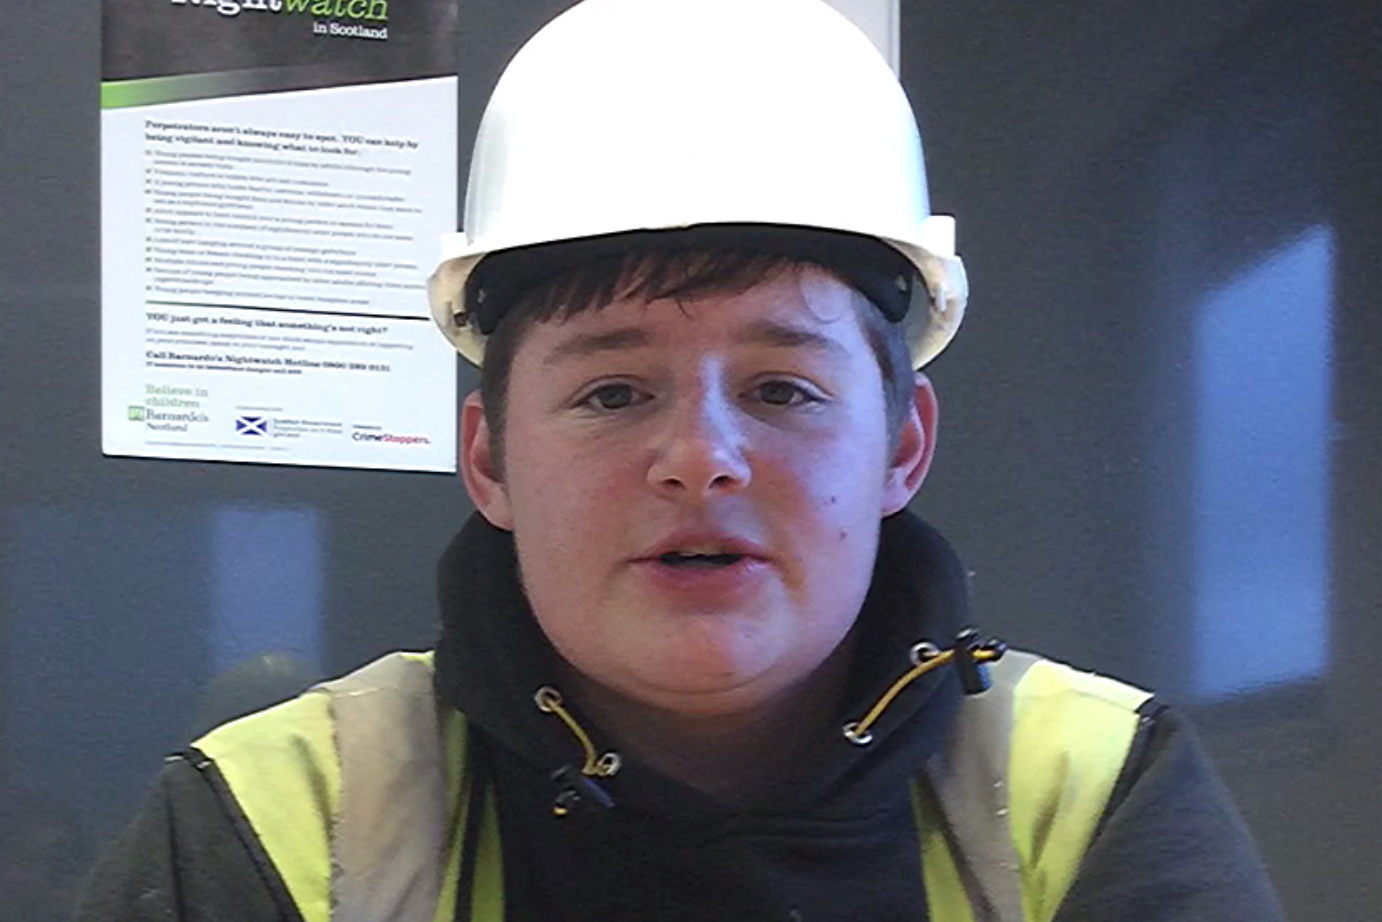 Apprentice Reece Hunter in a high visibility jacket and hard hat